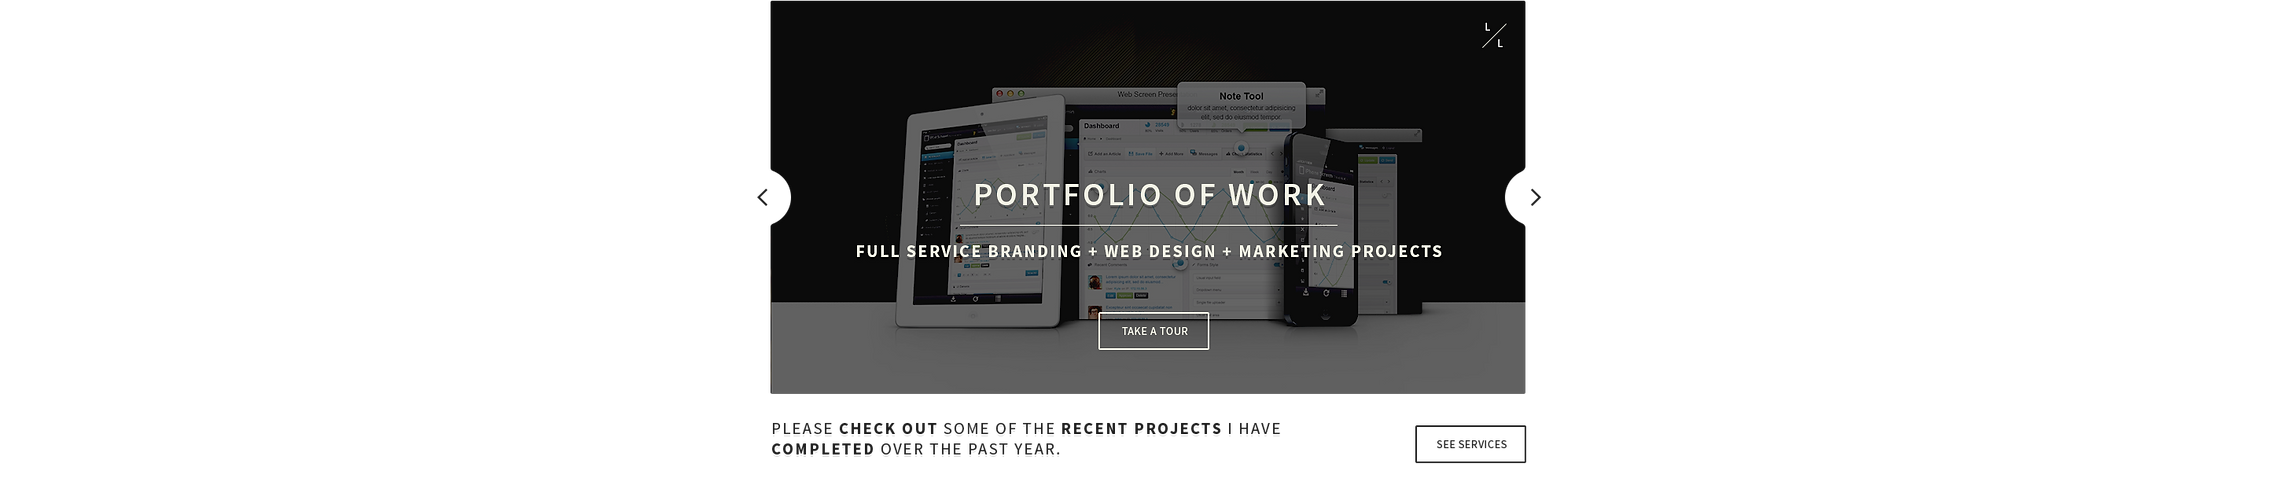 Full Service Branding + Web Design + Marketing Projects